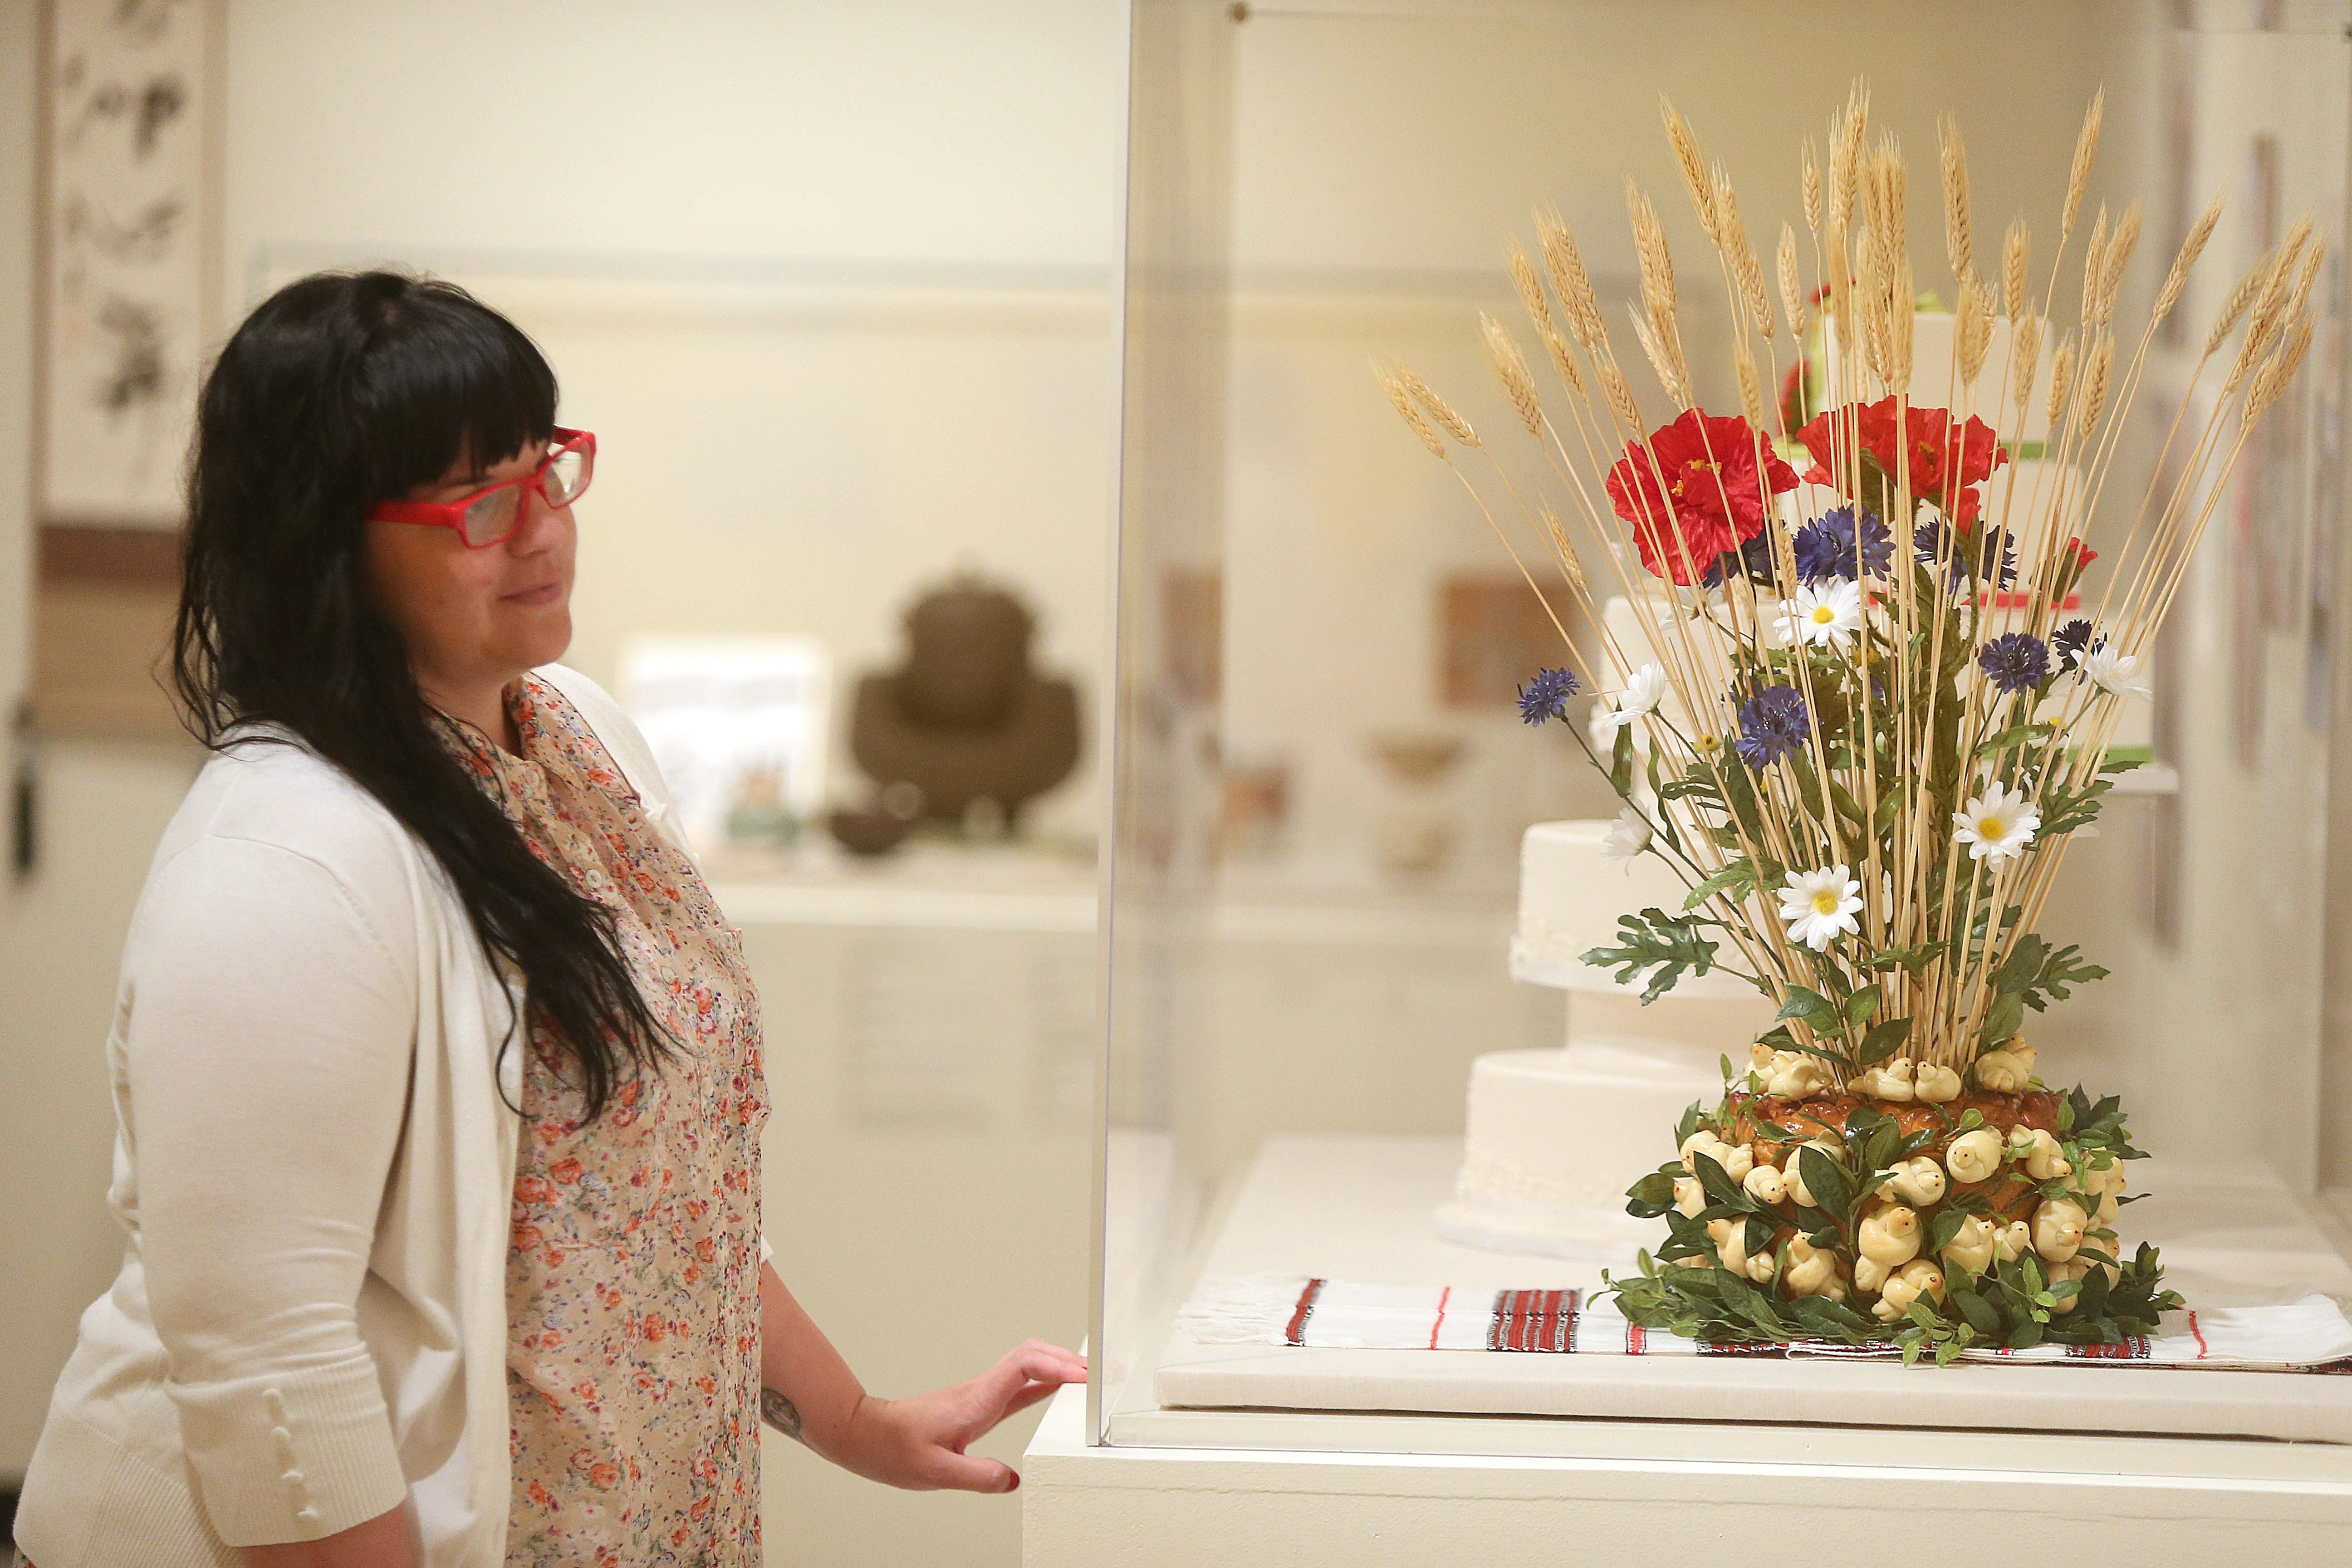 Hannah Cattarin of Buffalo looks at korovai, or Ukrainian wedding bread, in the new ethnic food exhibit at the Castellani Art Museum on July 23.